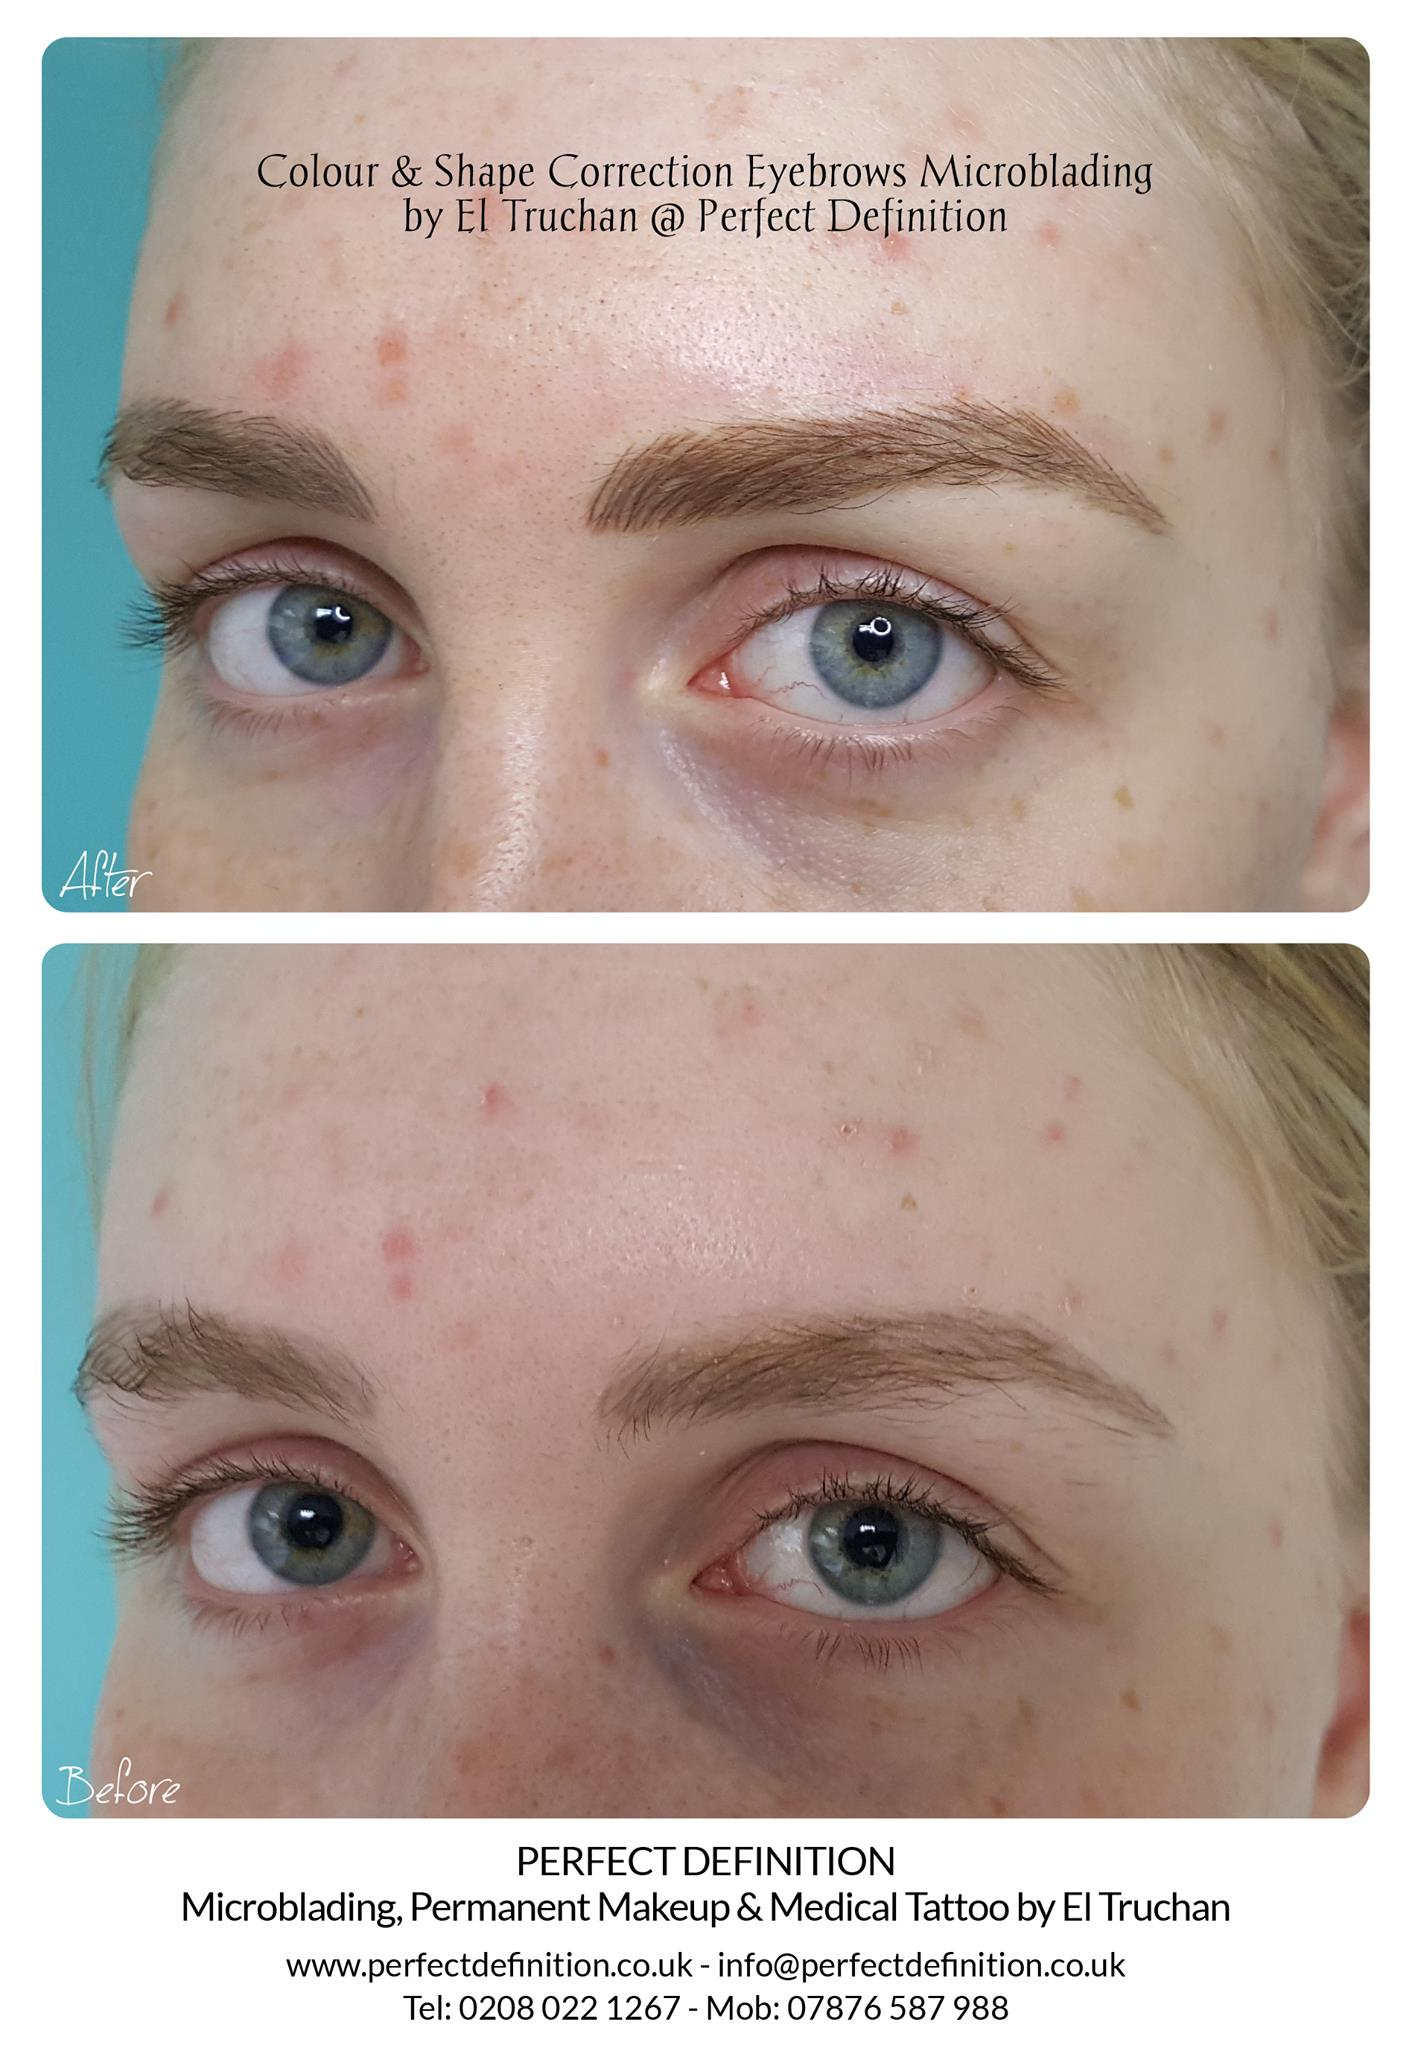 Colour & Shape Correction Eyebrows Micro